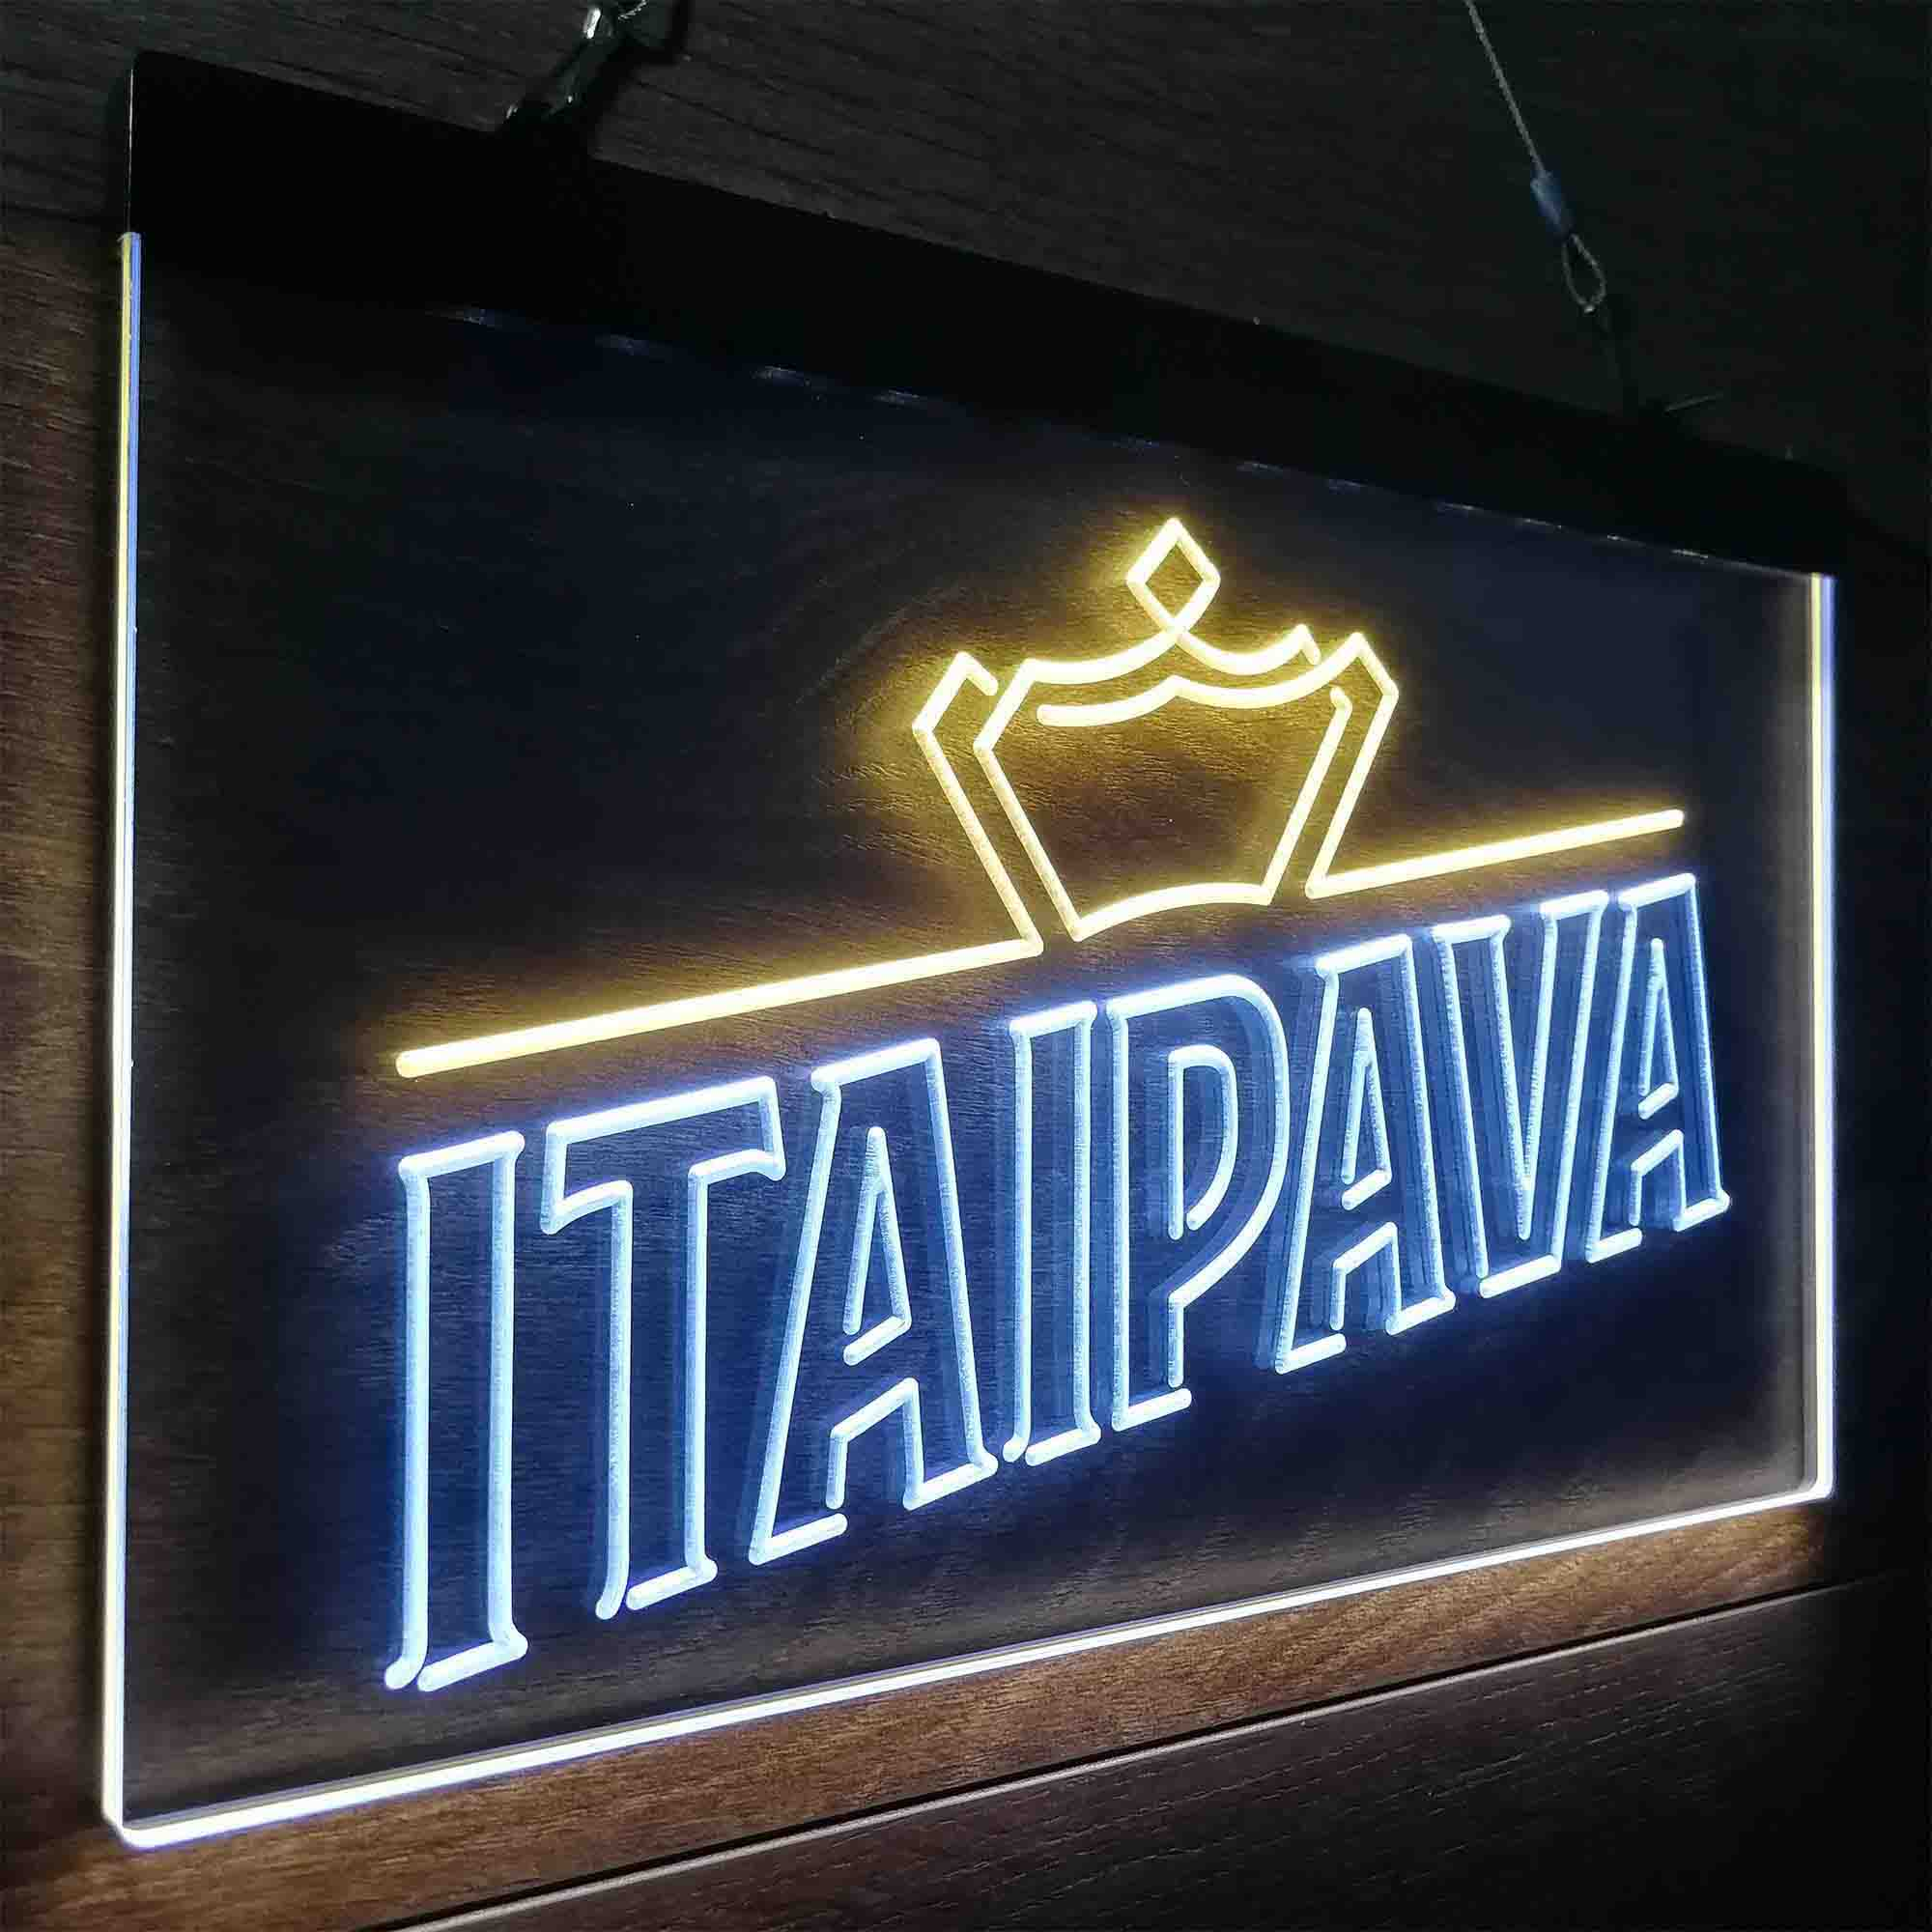 Itaipava Beer Neon-Like LED Sign